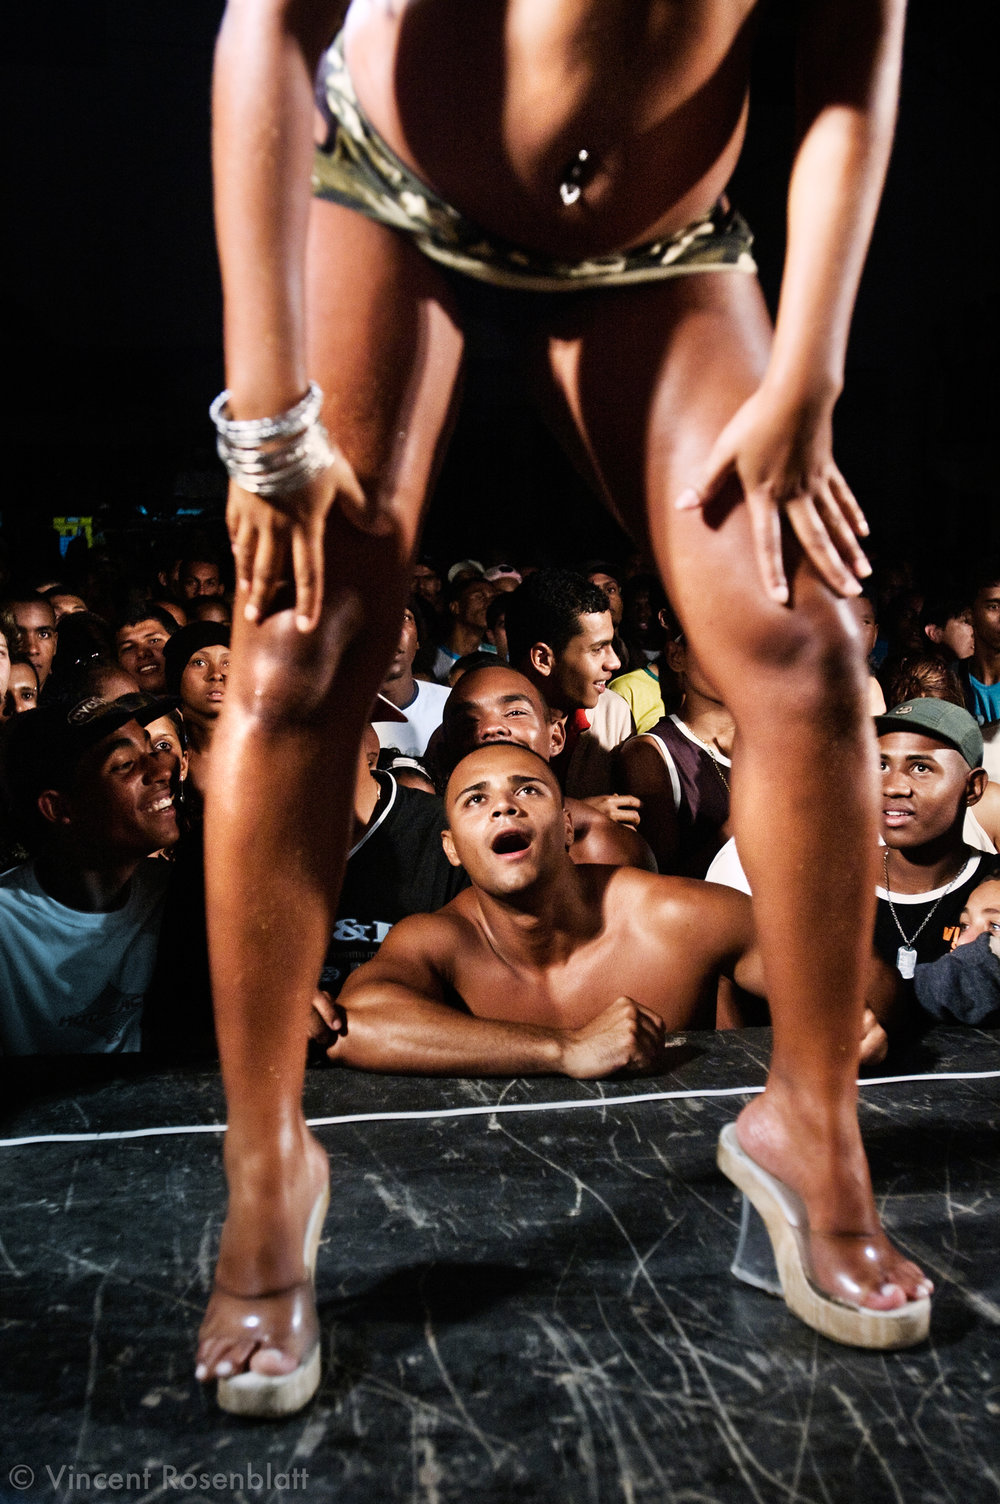 """Daiane, then a dancer of """"Bonde da Loura"""", known under the nickname """"Mulher Jaca"""" (Jaca : a tropical fruit) performing during a Baile funk in Nova Iguacu, in Rio de Janeiro's suburbs. Numerous MCs perform with female or male dancers who sometimes give a hint of a strip tease."""